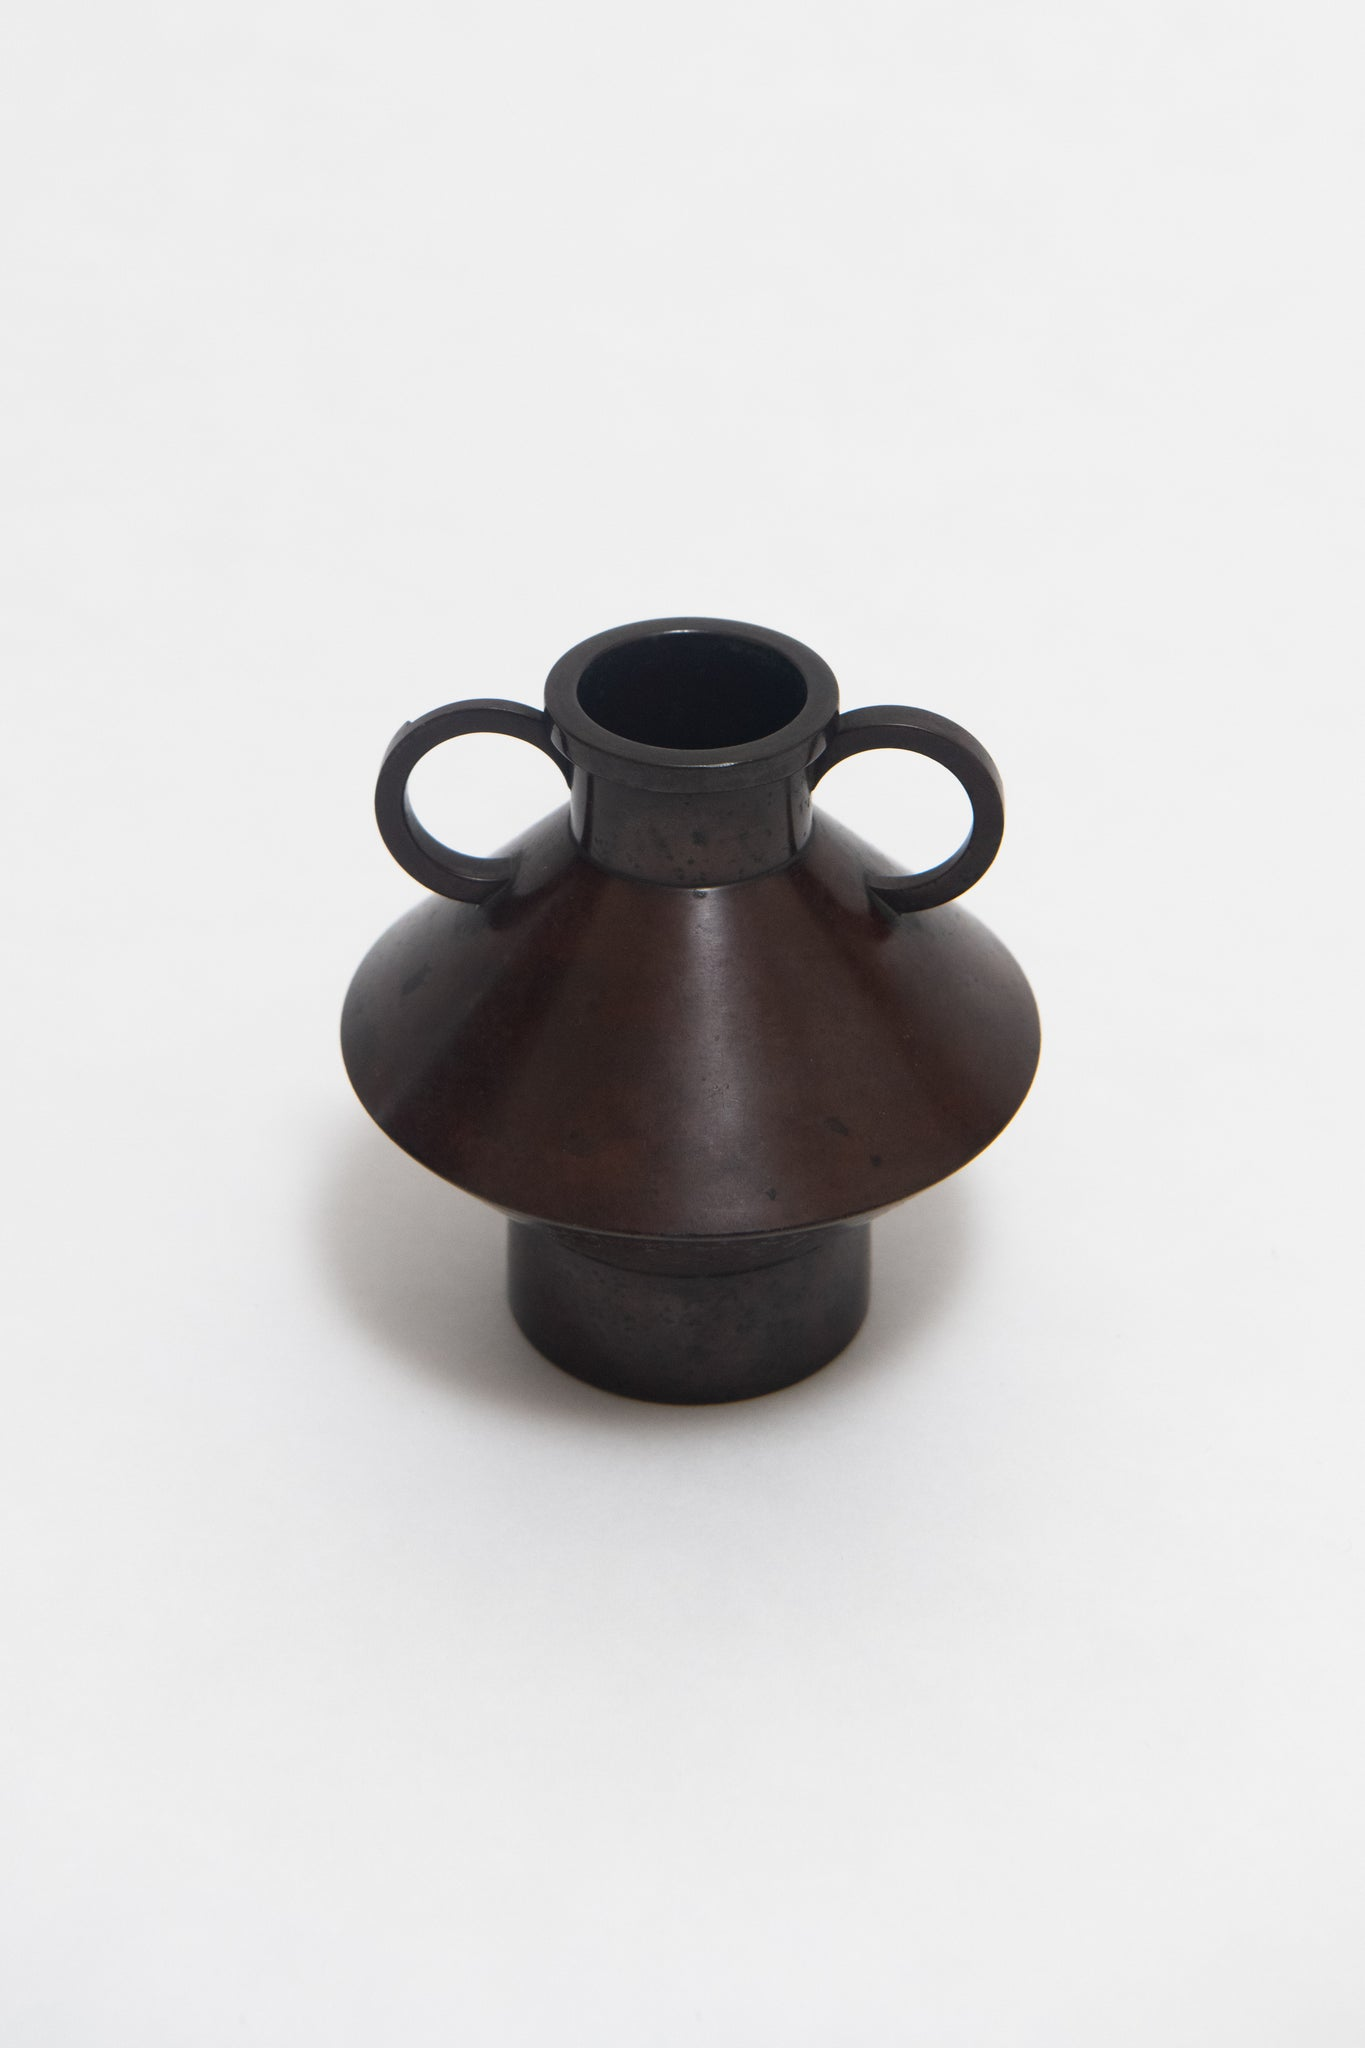 JAPANESE, BRONZE VASE WITH HANDLES, C. 1950